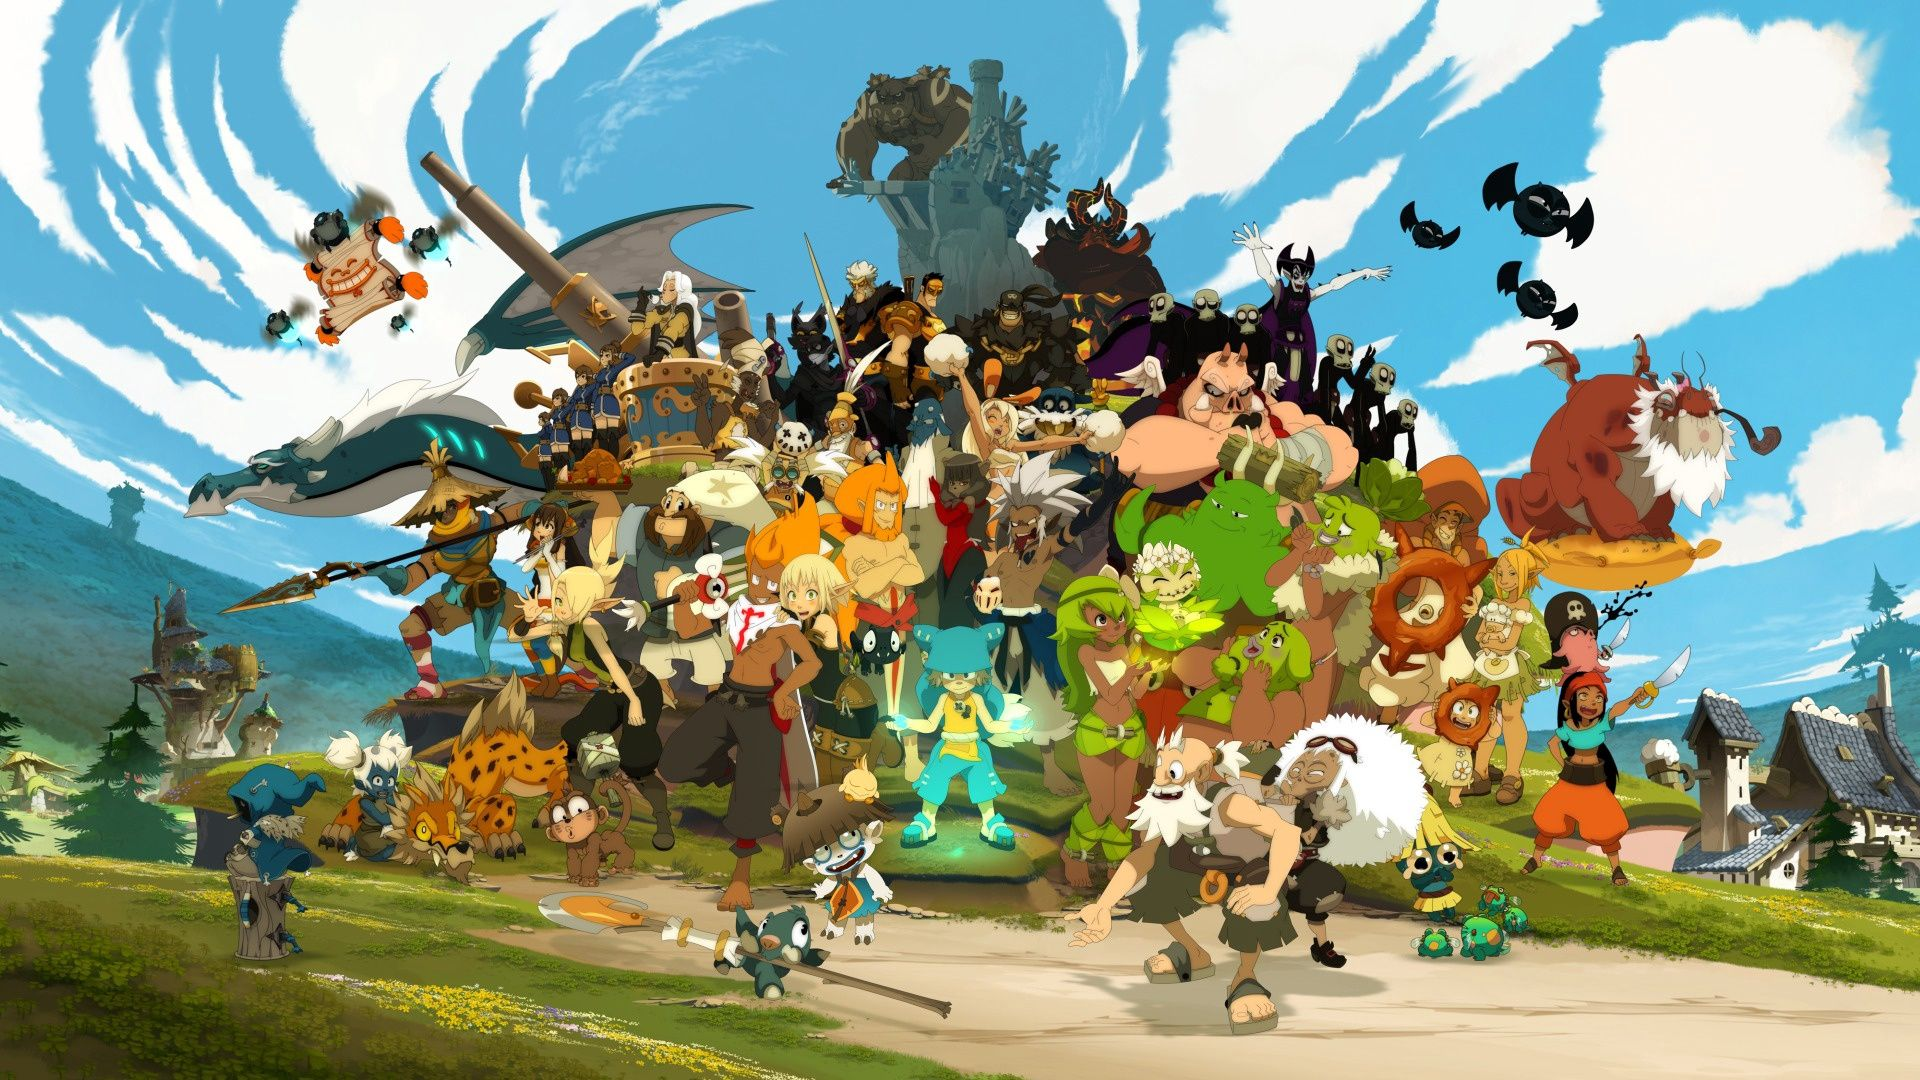 View, download, comment, and rate this 1920x1080 Wakfu